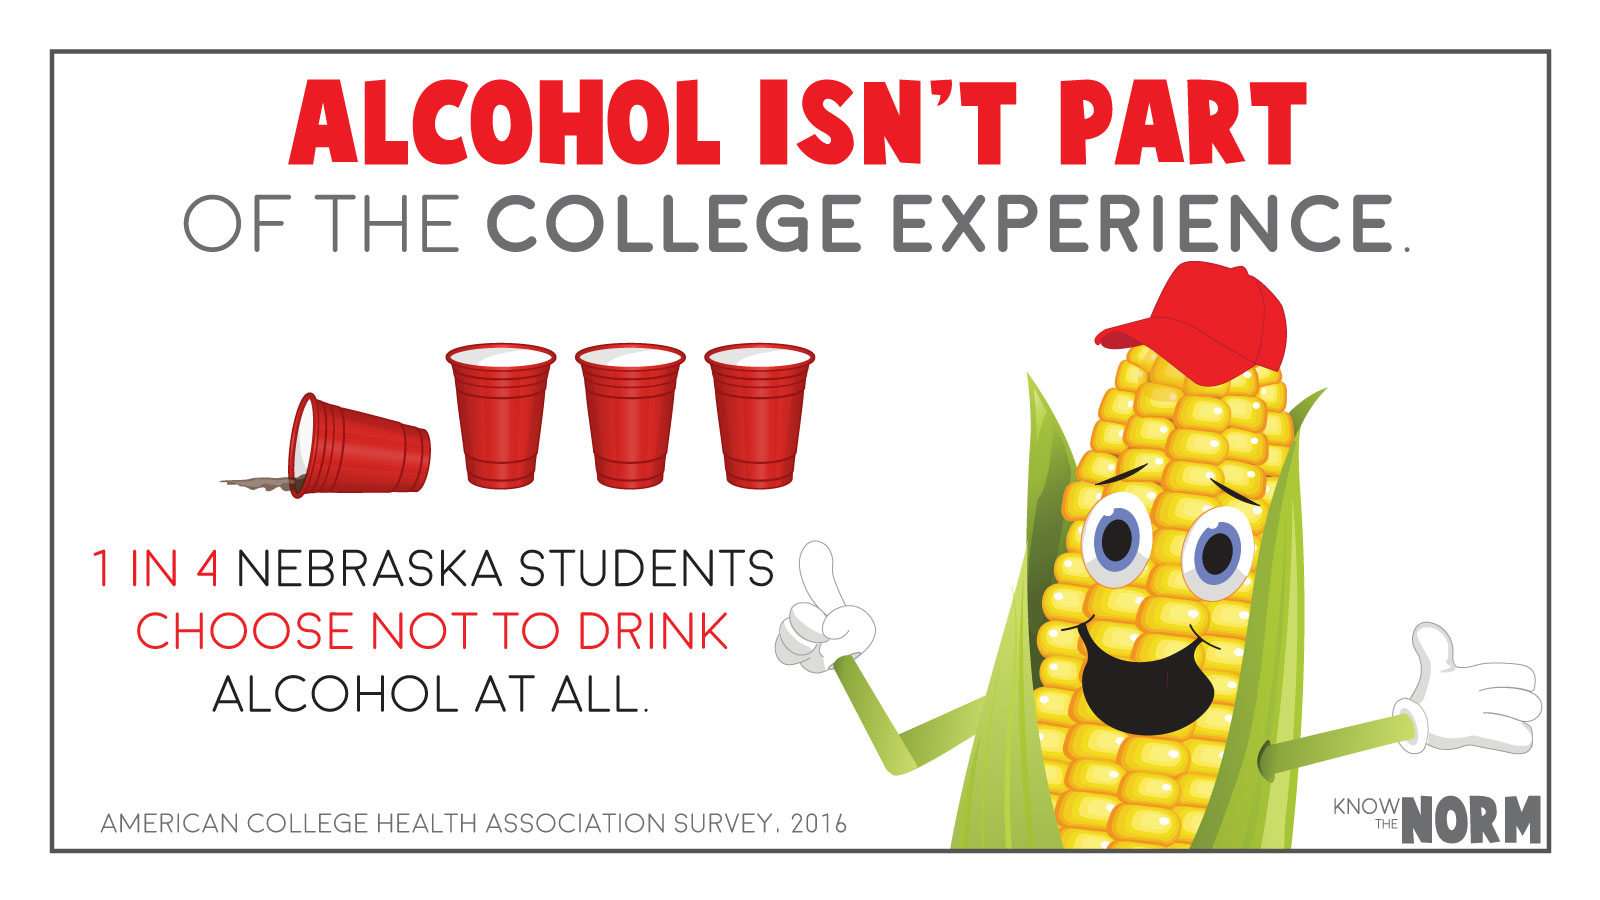 Alcohol isn't part of the college experience